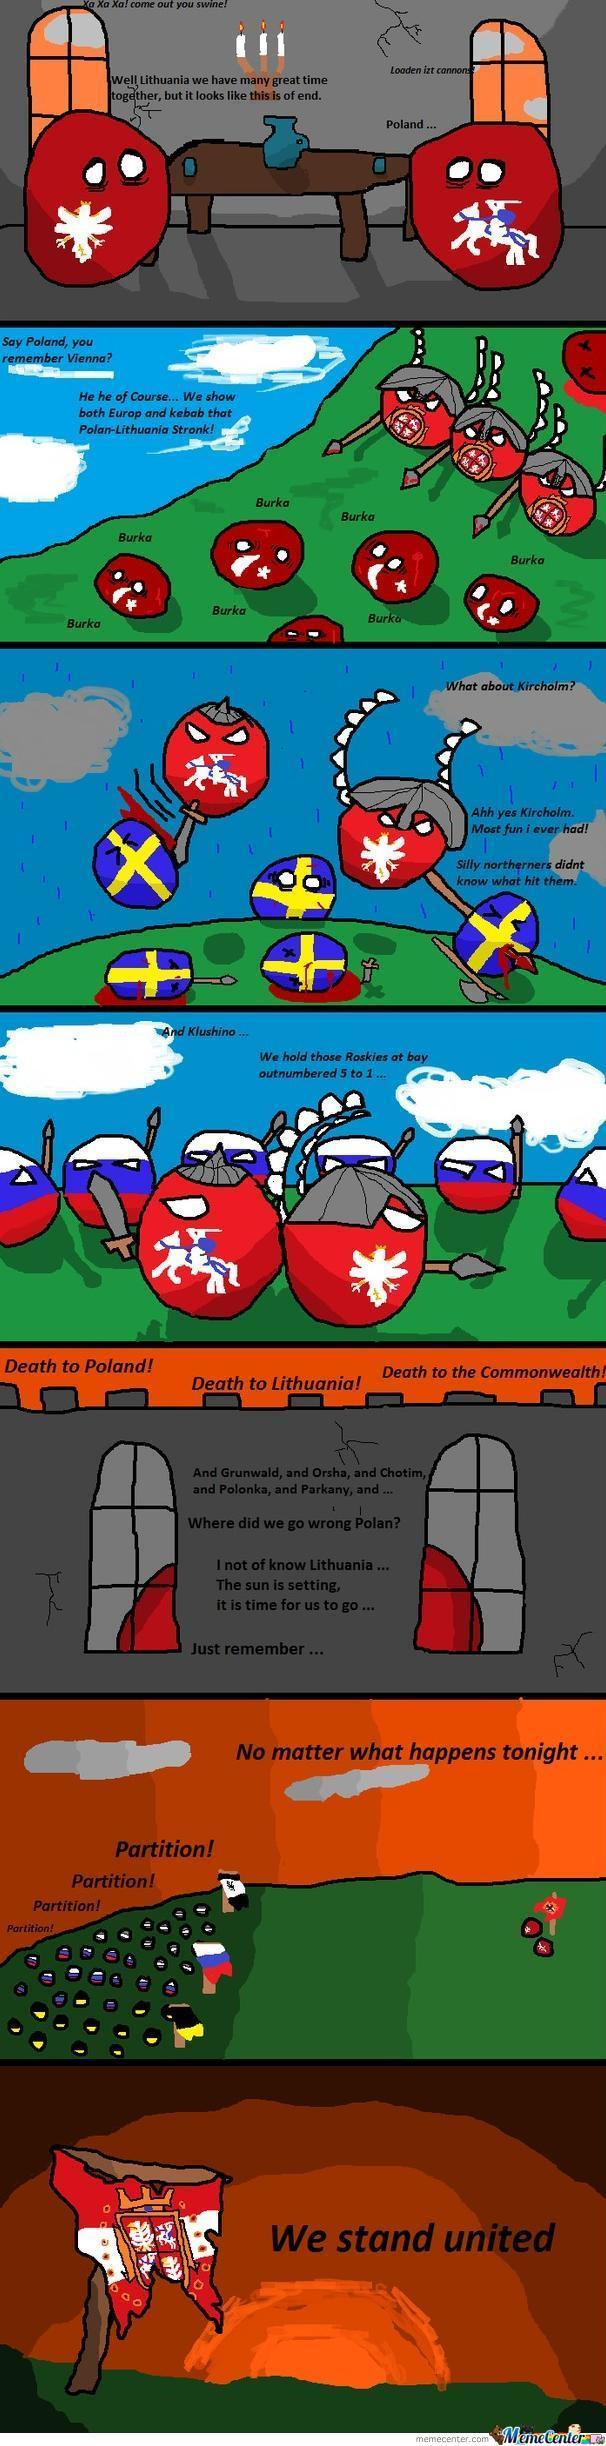 Poland Ball Lesson Of History